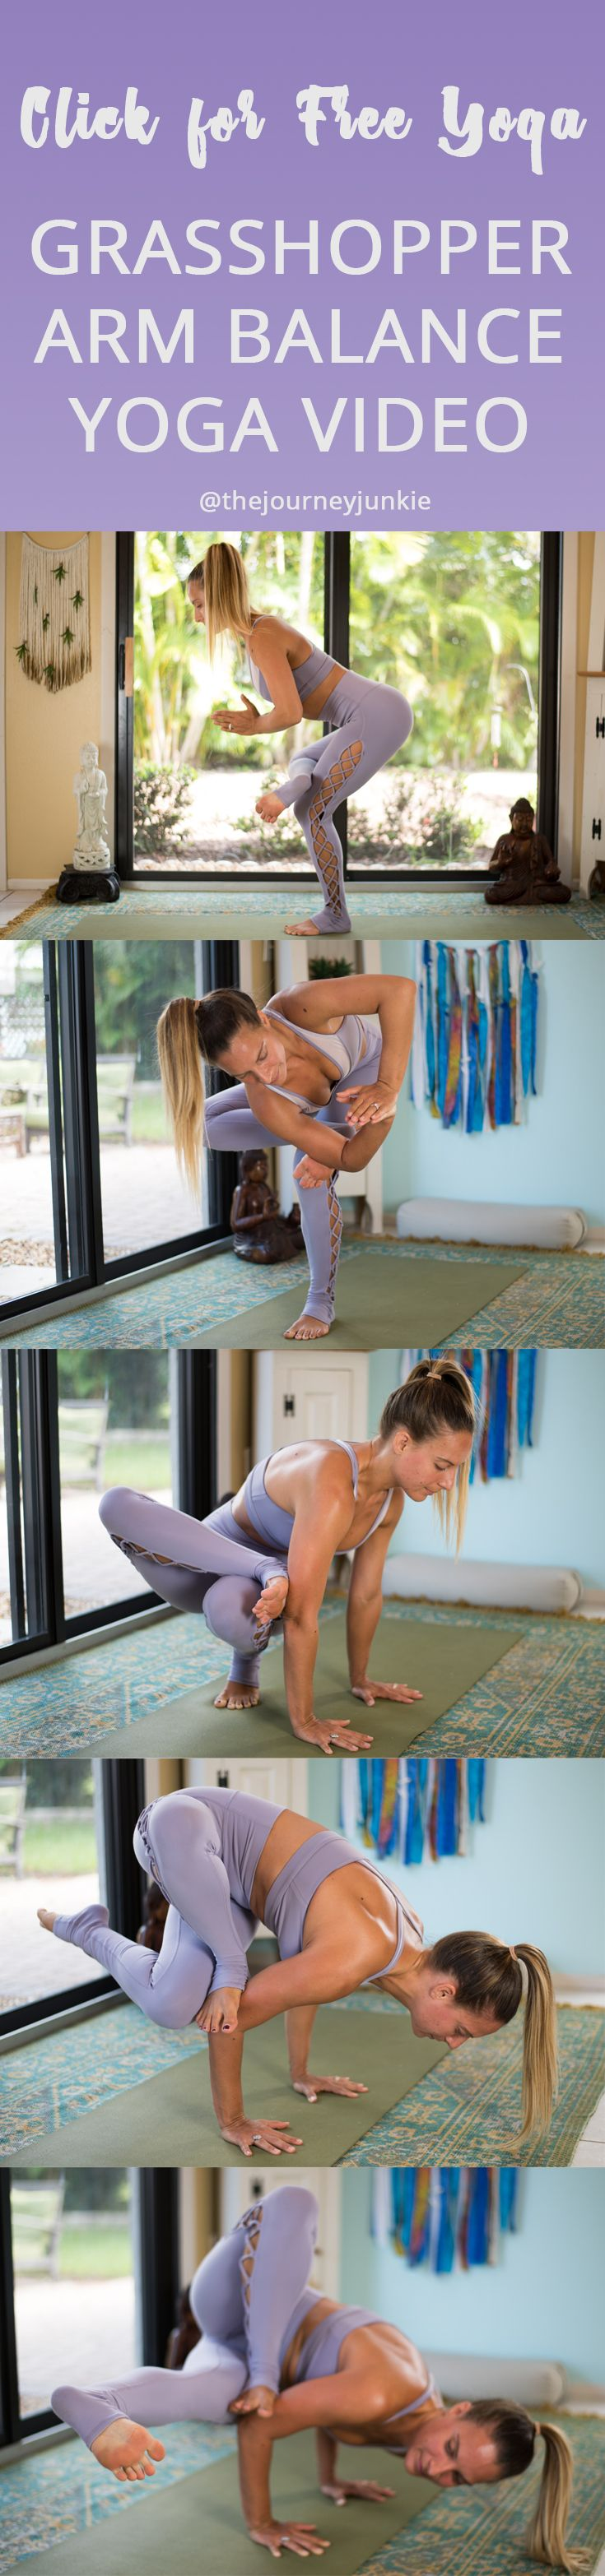 Grasshopper Yoga Pose Video: Twist + Hip Opener Flow - Pin now, unroll your mat ...